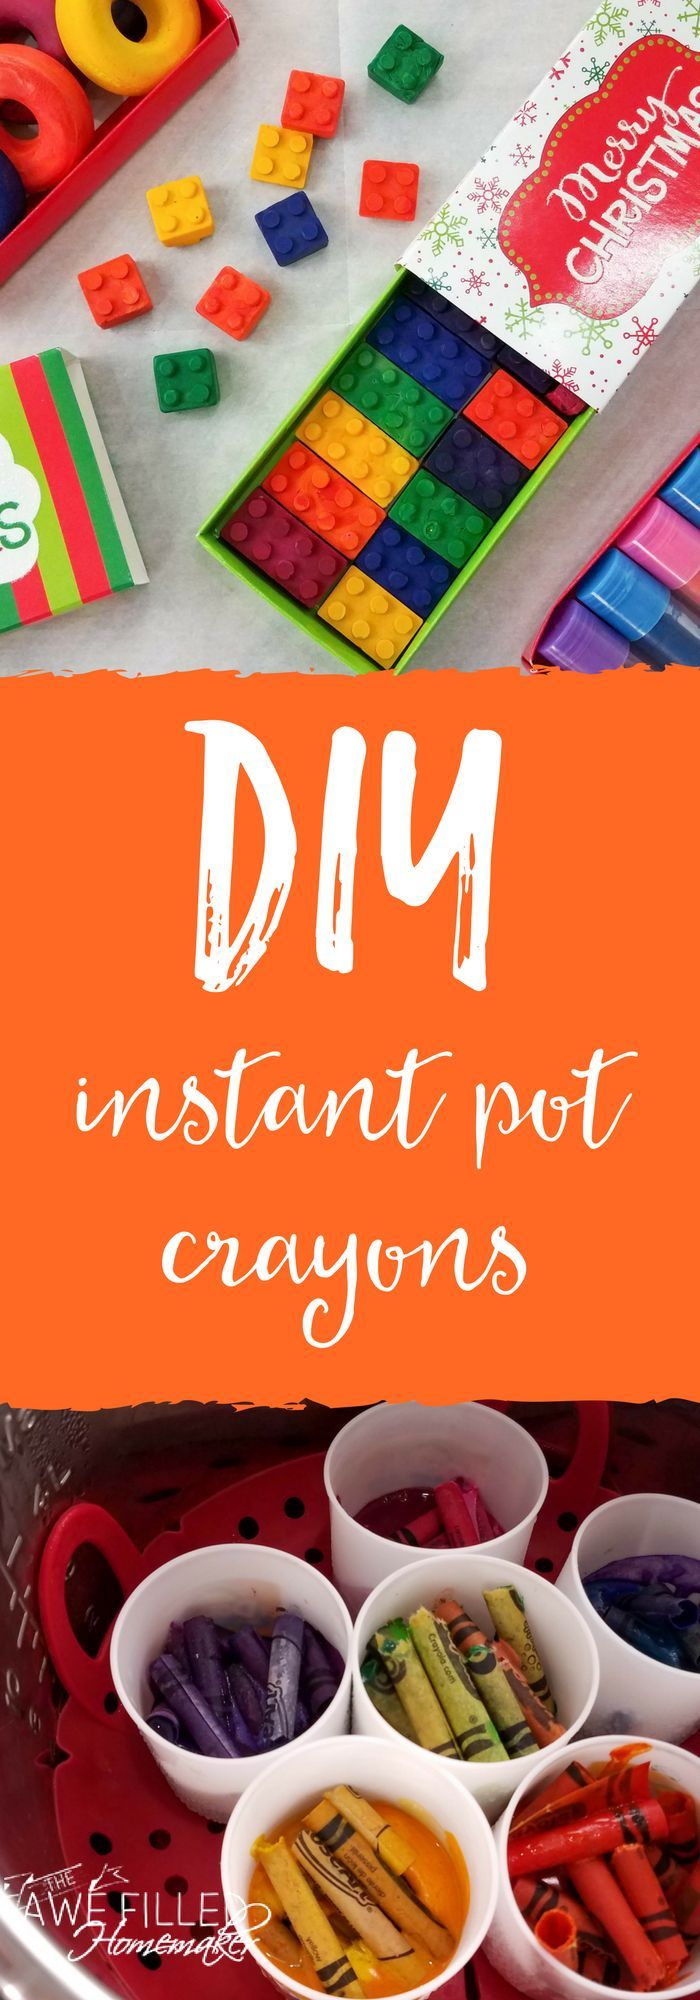 """I am so excited about this post! As a homeschool mom, blogger, and all around instant pot lover---I am beyond excited to share """"DIY Instant Pot Crayons!"""" Seriously- this project is so much fun! They are such a fun project and make great gifts! Kid tested...although they didn't eat them. ;) #InstantPot #InstantPotRecipes #DIY #KidsCraft #Crayons #homeschool via @AFHomemaker"""